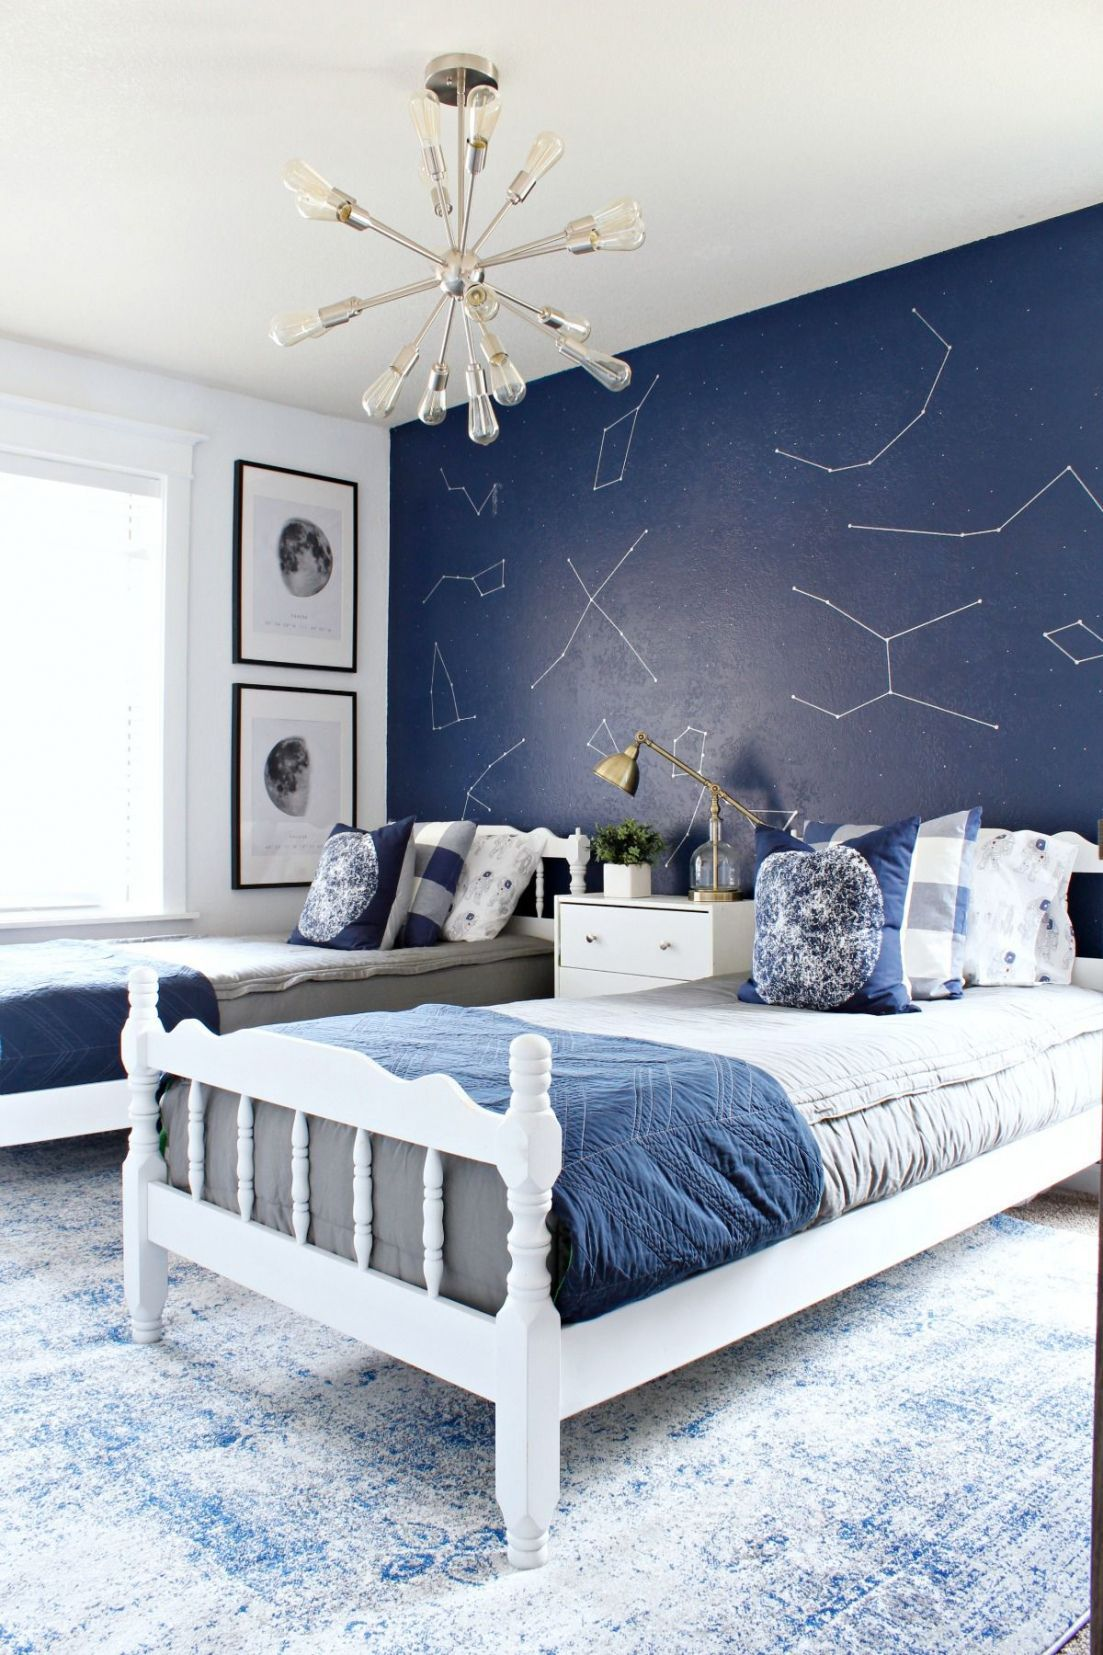 77 Boys Space Room Low Budget Bedroom Decorating Ideas Check